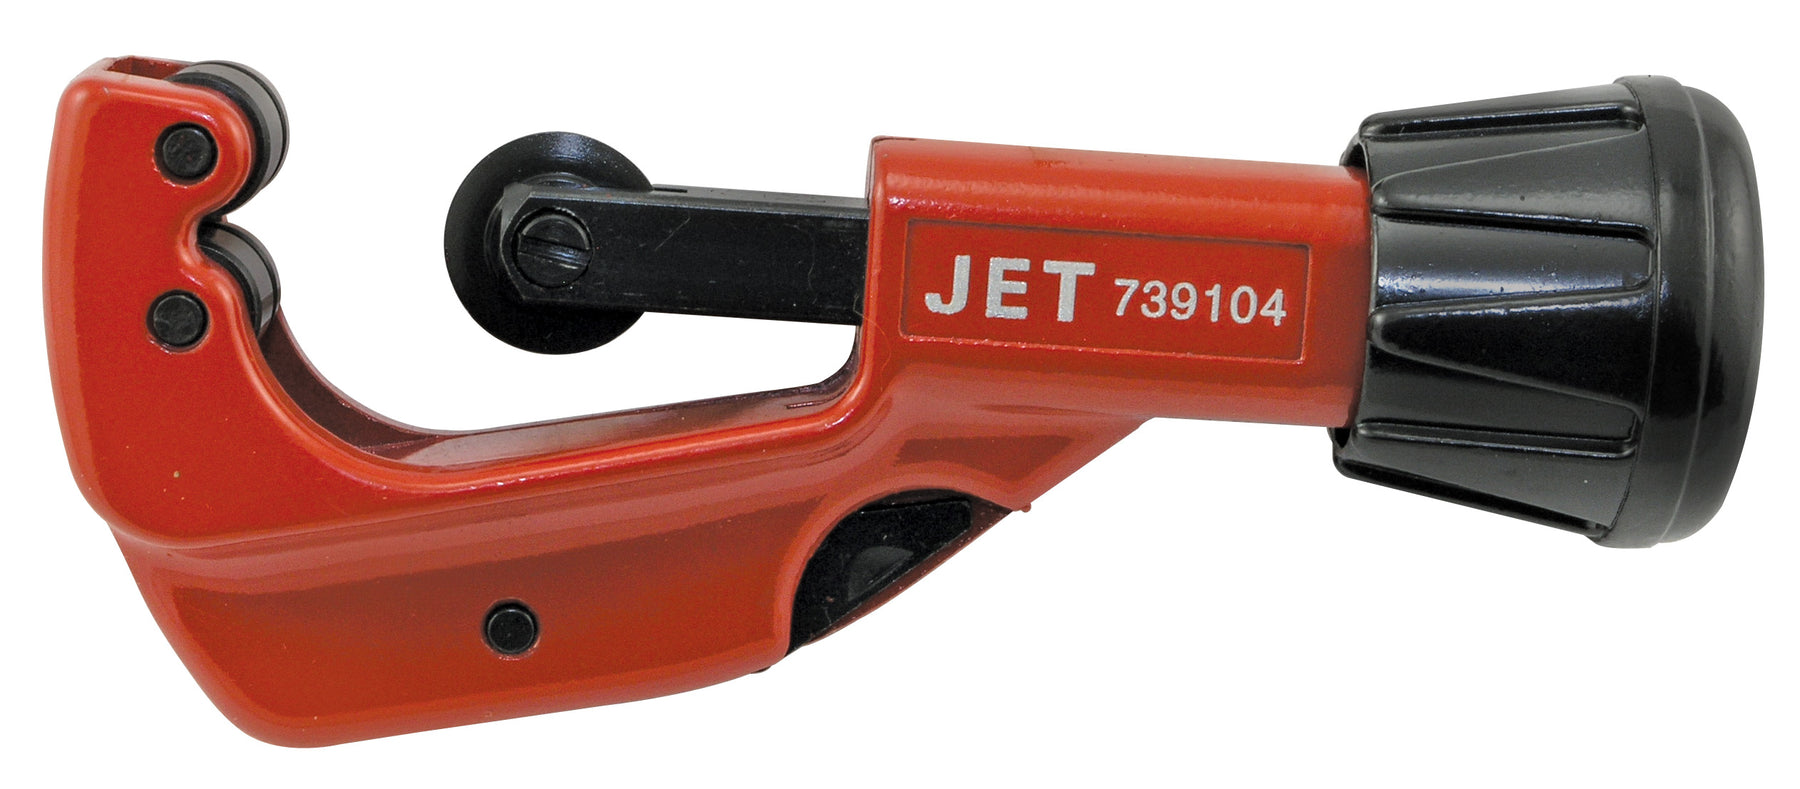 Tube Cutters JET JTTC-32 1-1/4 Inch Telescoping Tubing Cutter